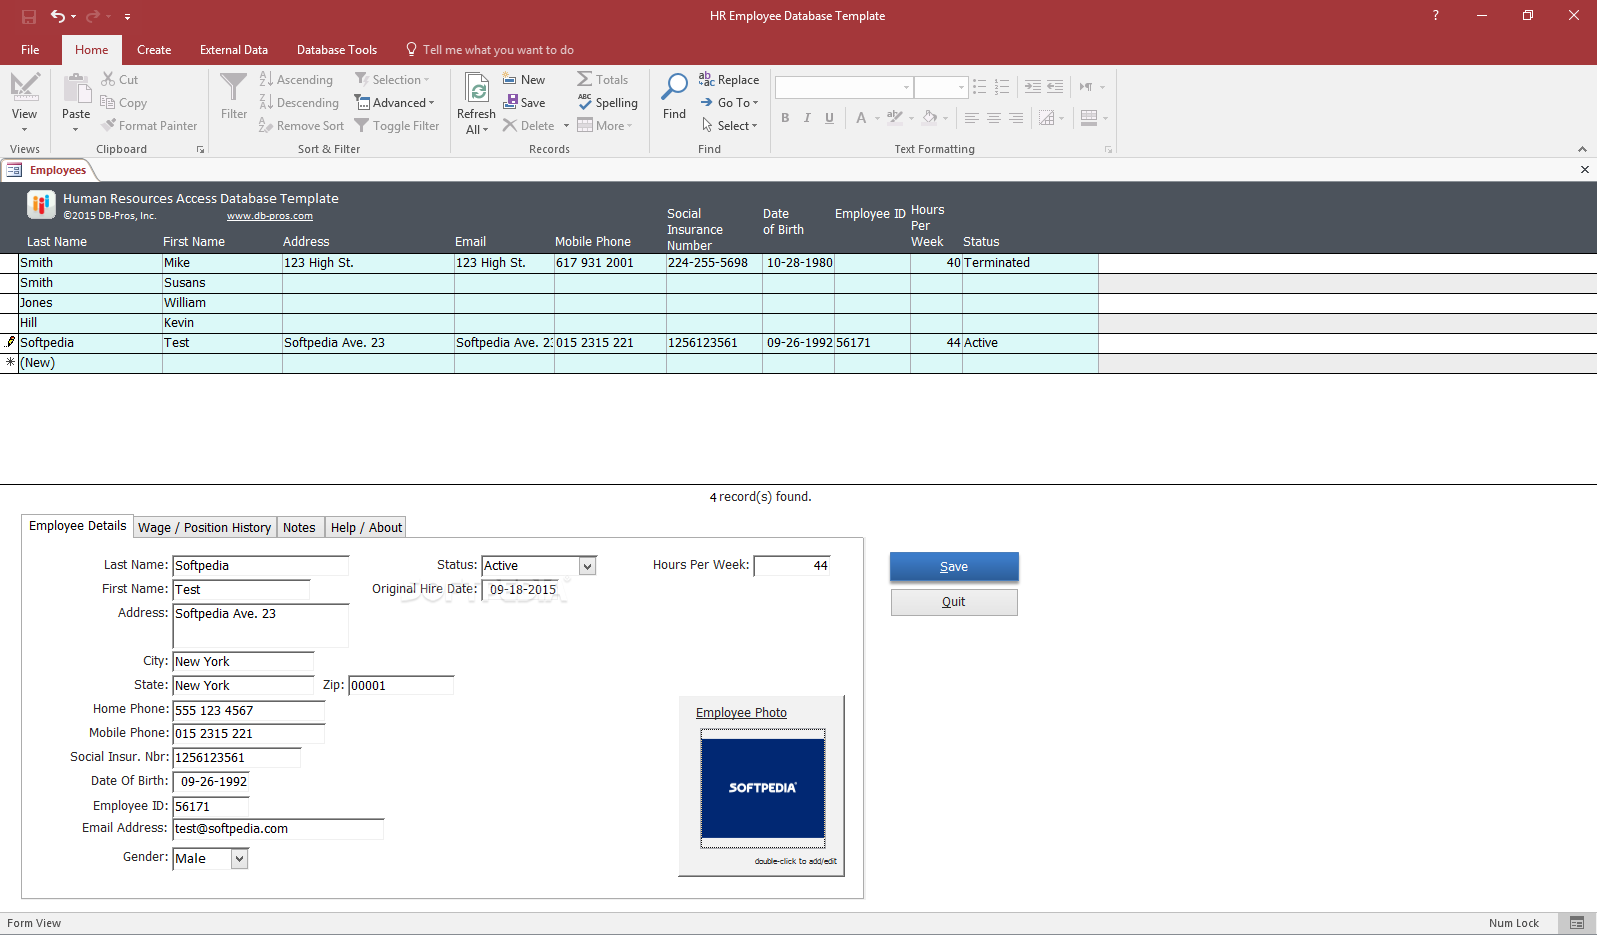 Download HR Employee Database Template 1.1.0